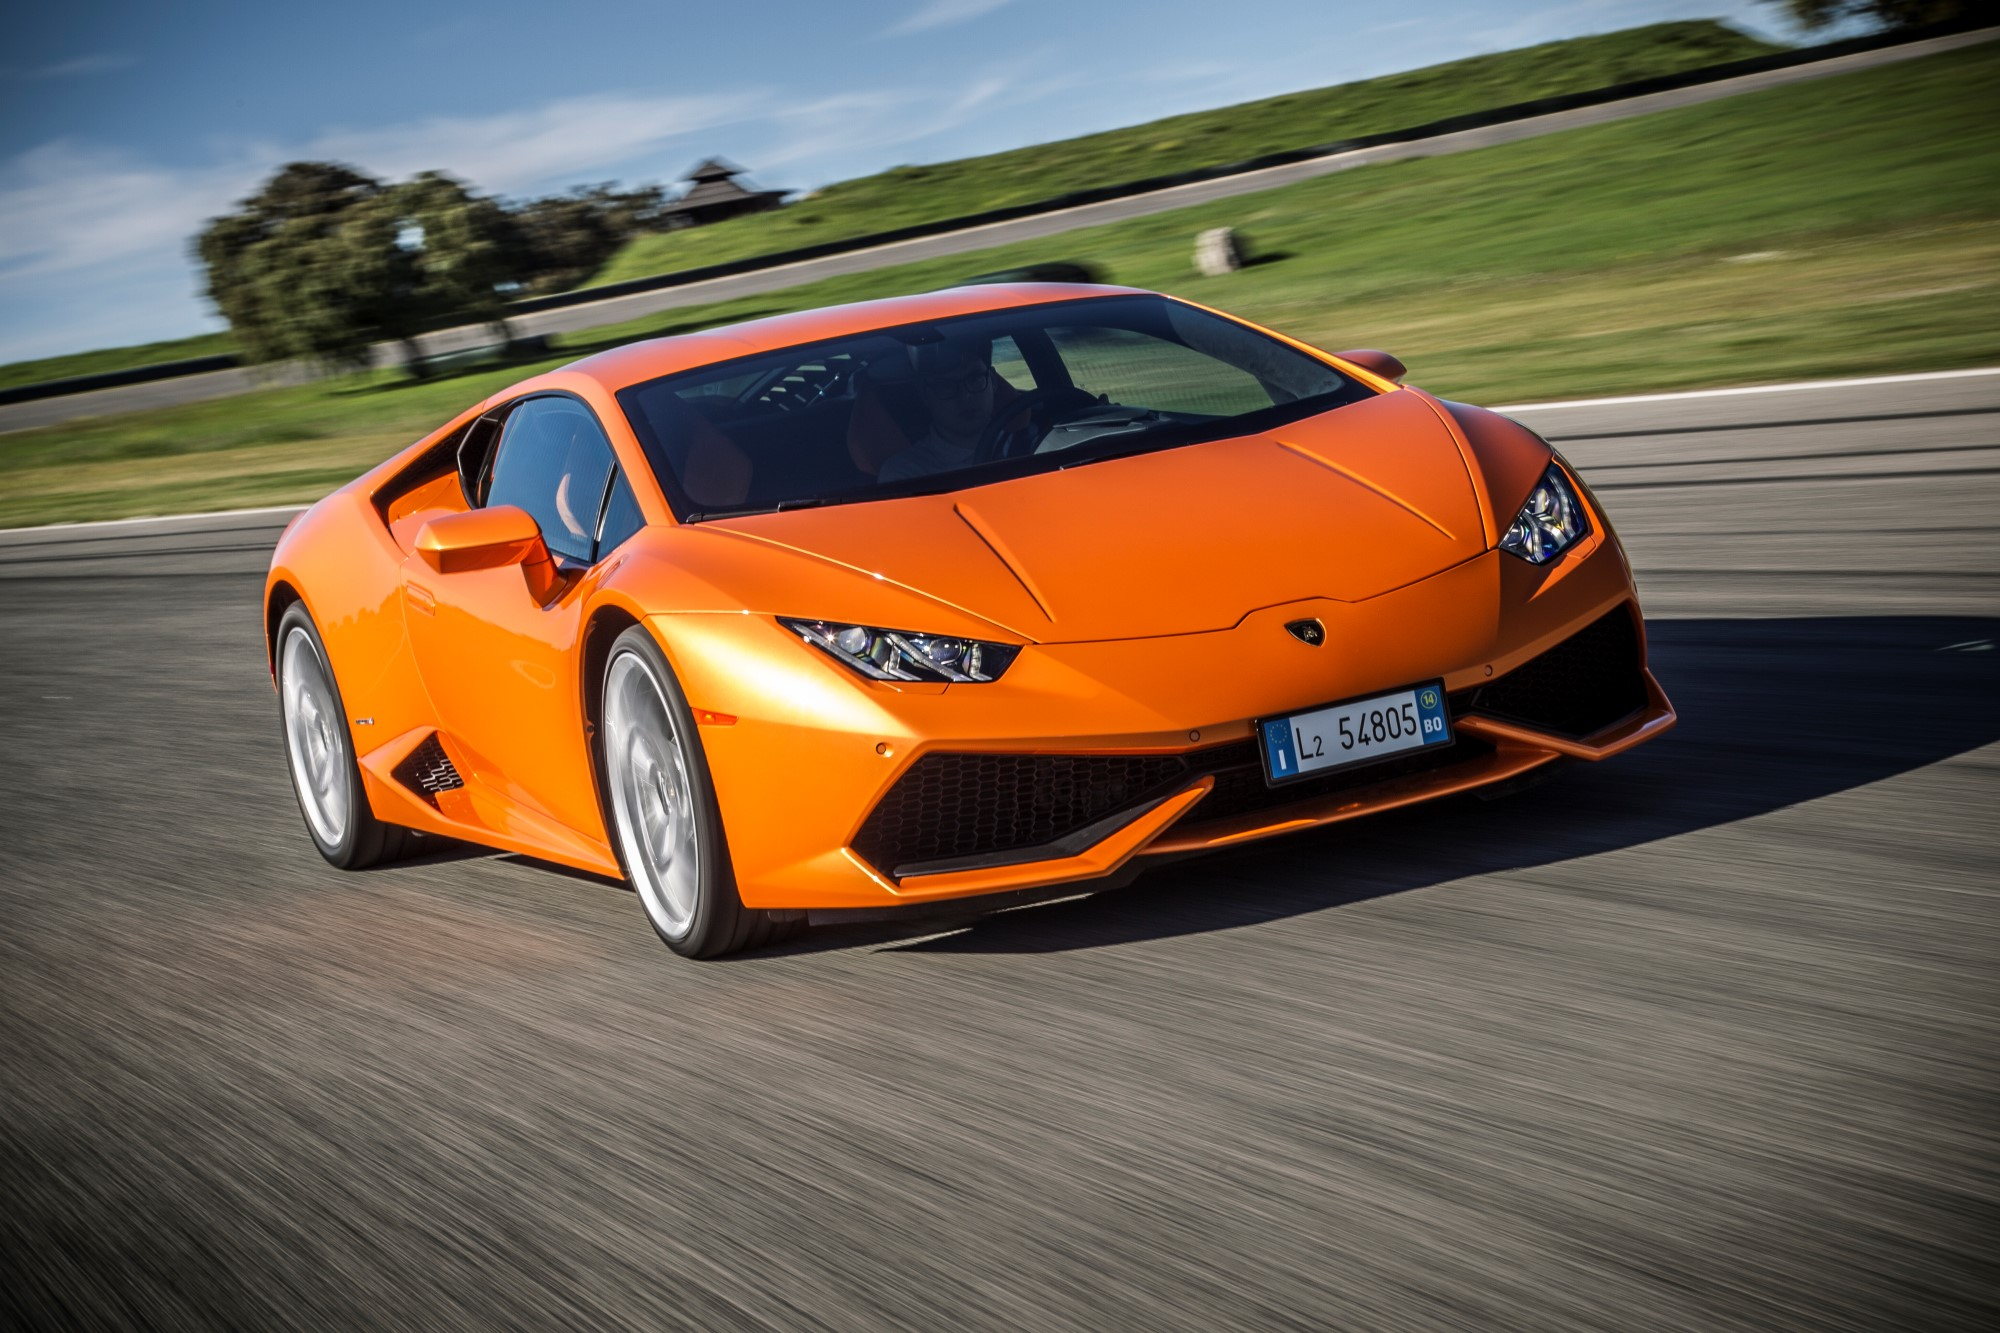 2015 lamborghini huracan review, ratings, specs, prices, and photos